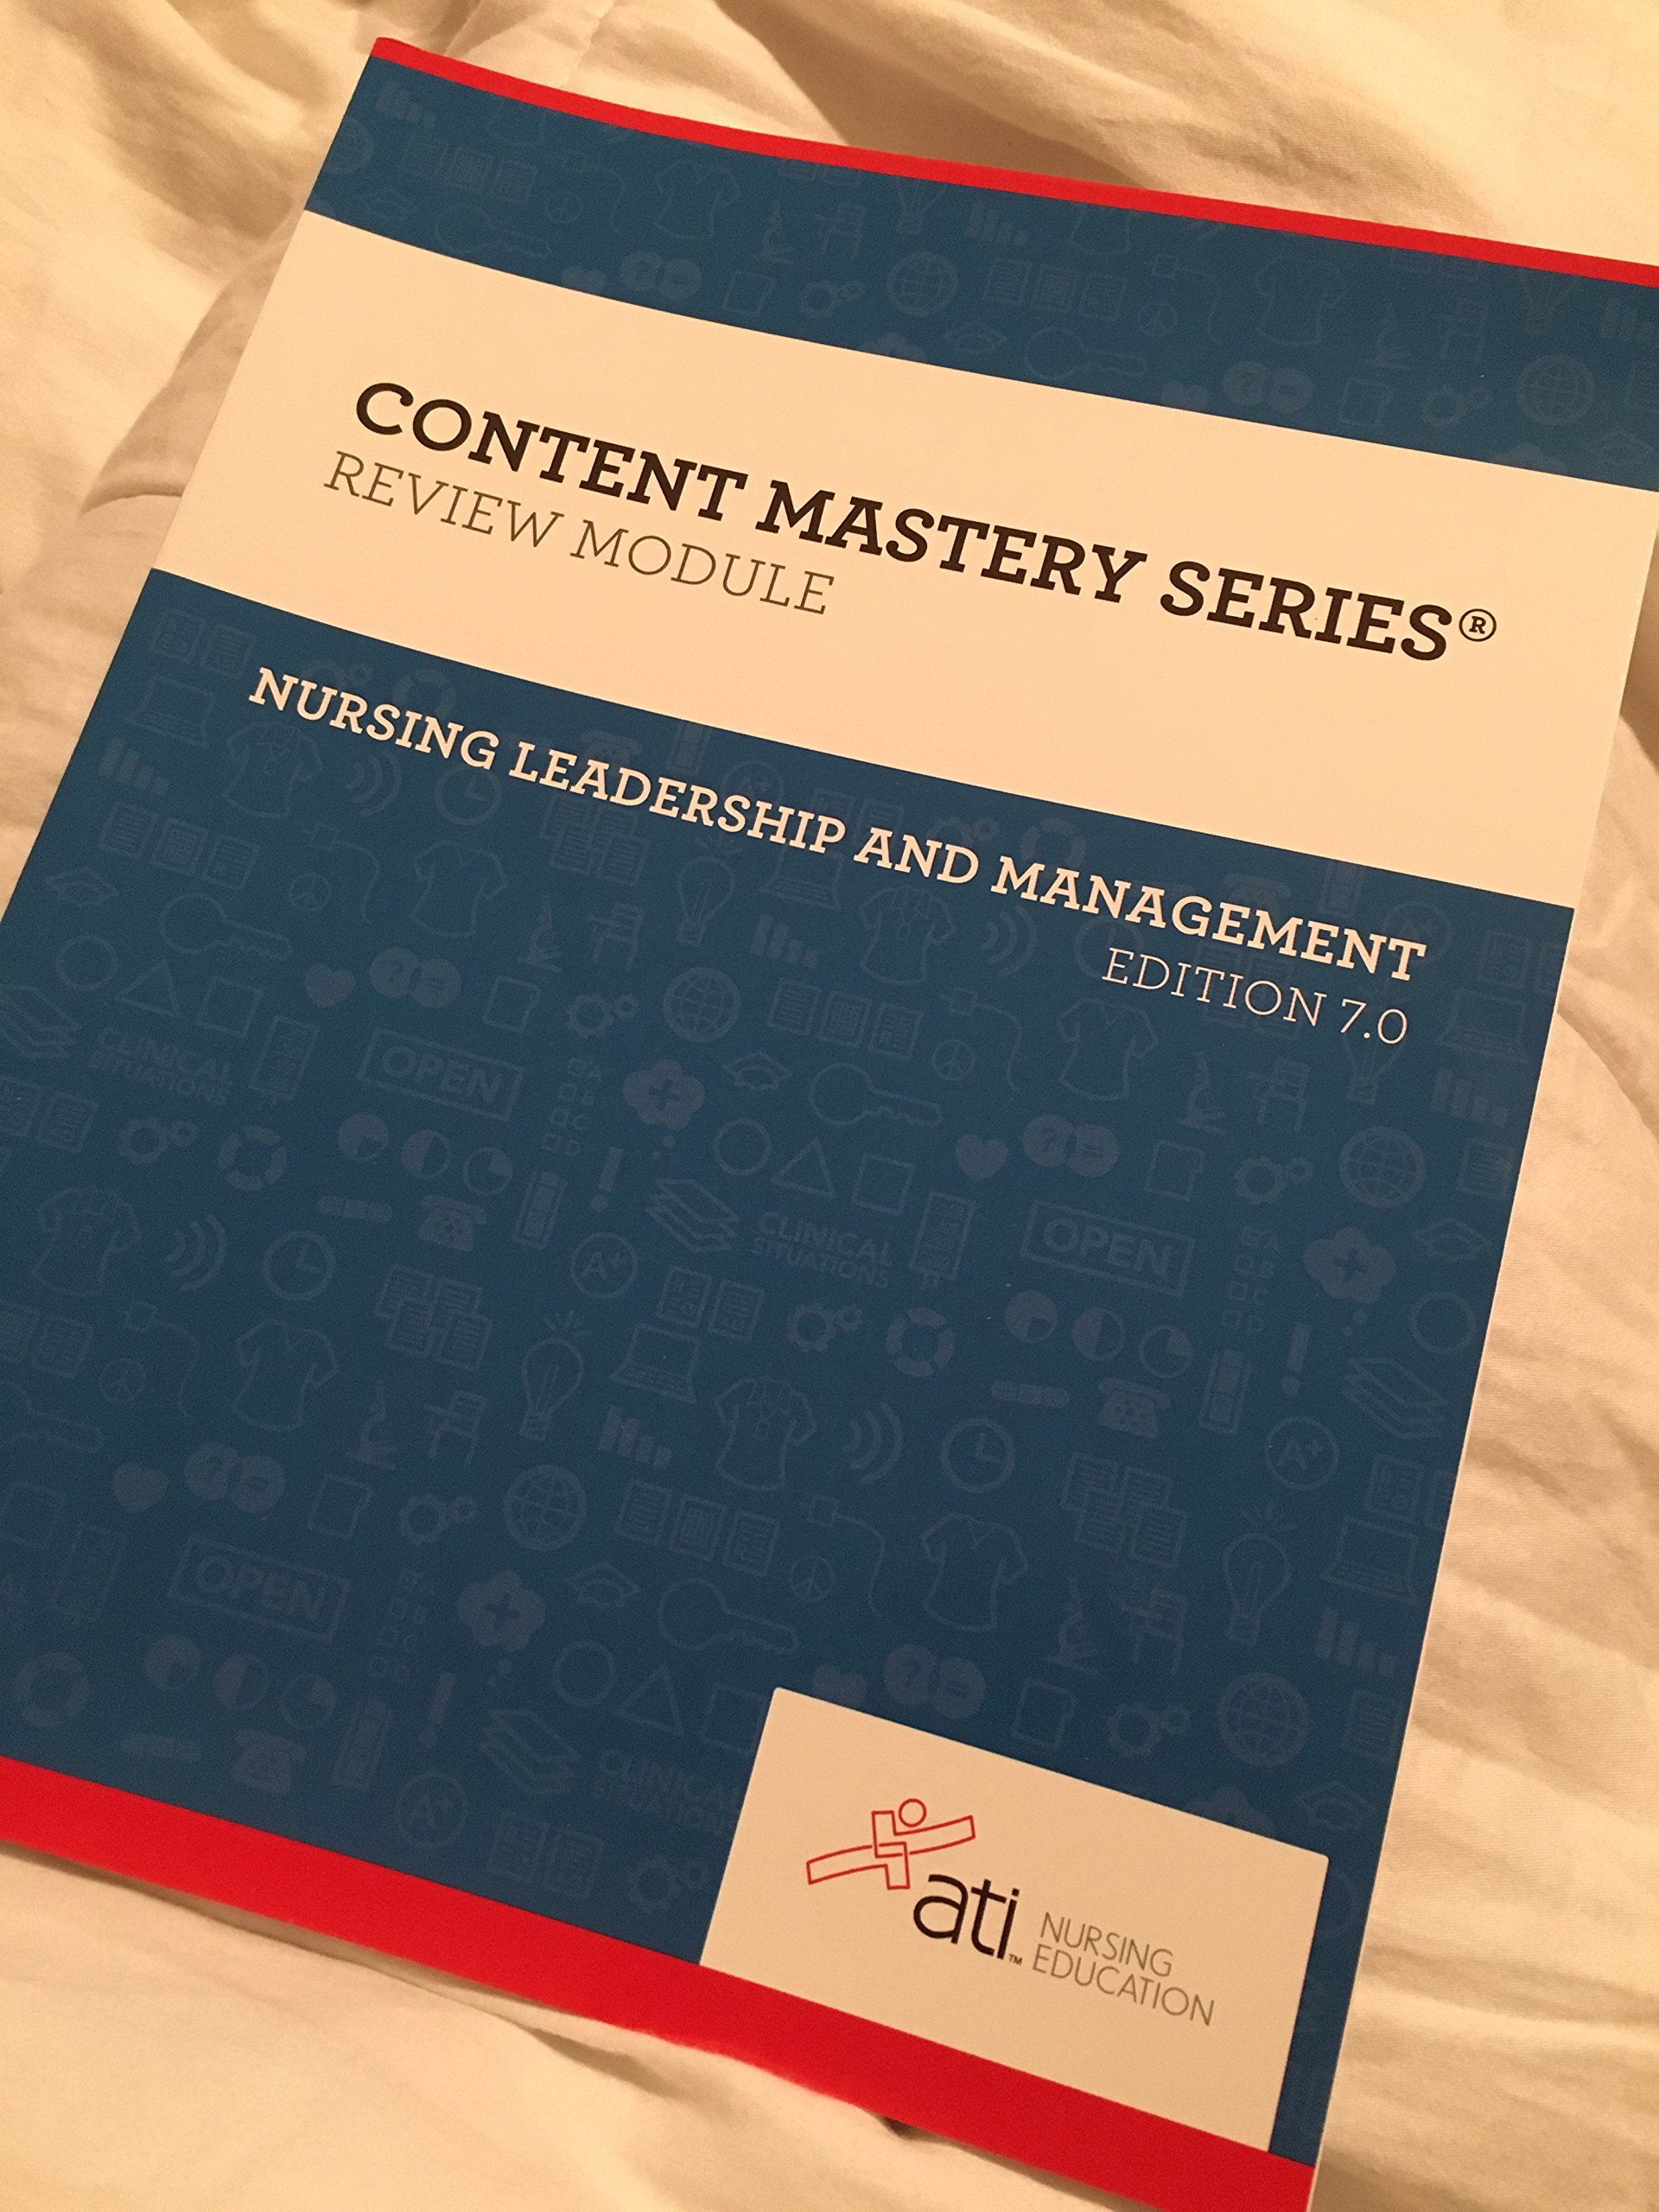 Download Leadership and Management Review Module - Edition 7.0 - 2016 PDF